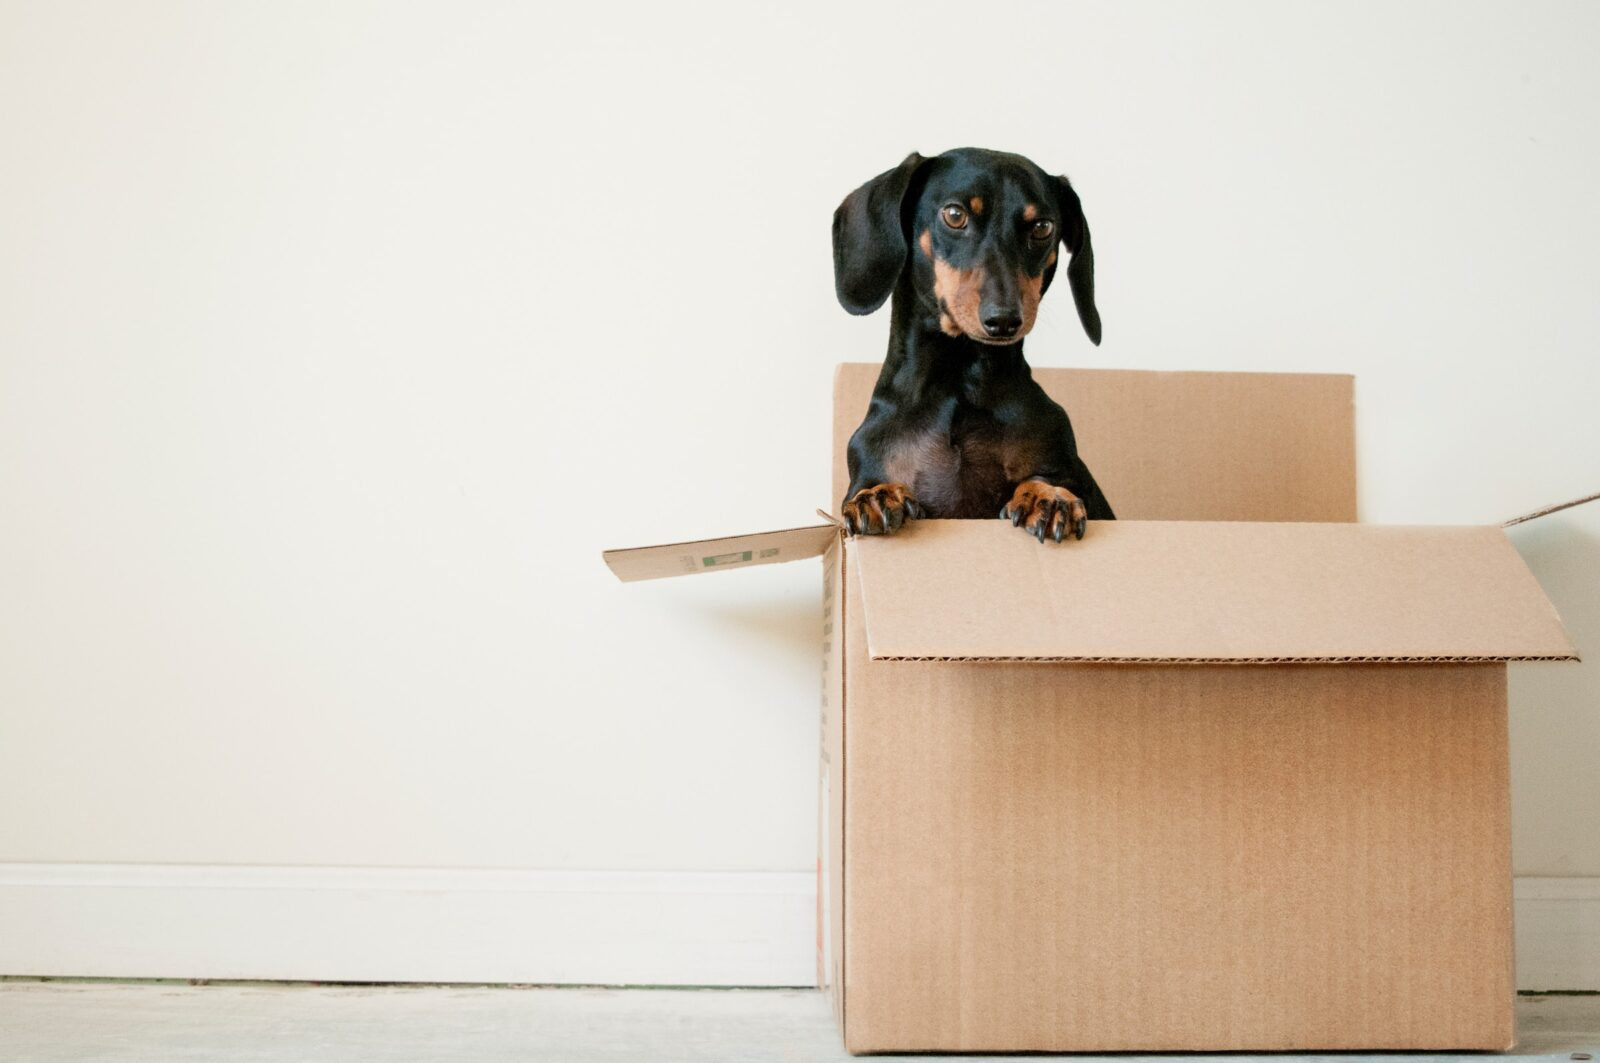 Get a dog accustomed to moving supplies so on the moving day they'll not cause any trouble.